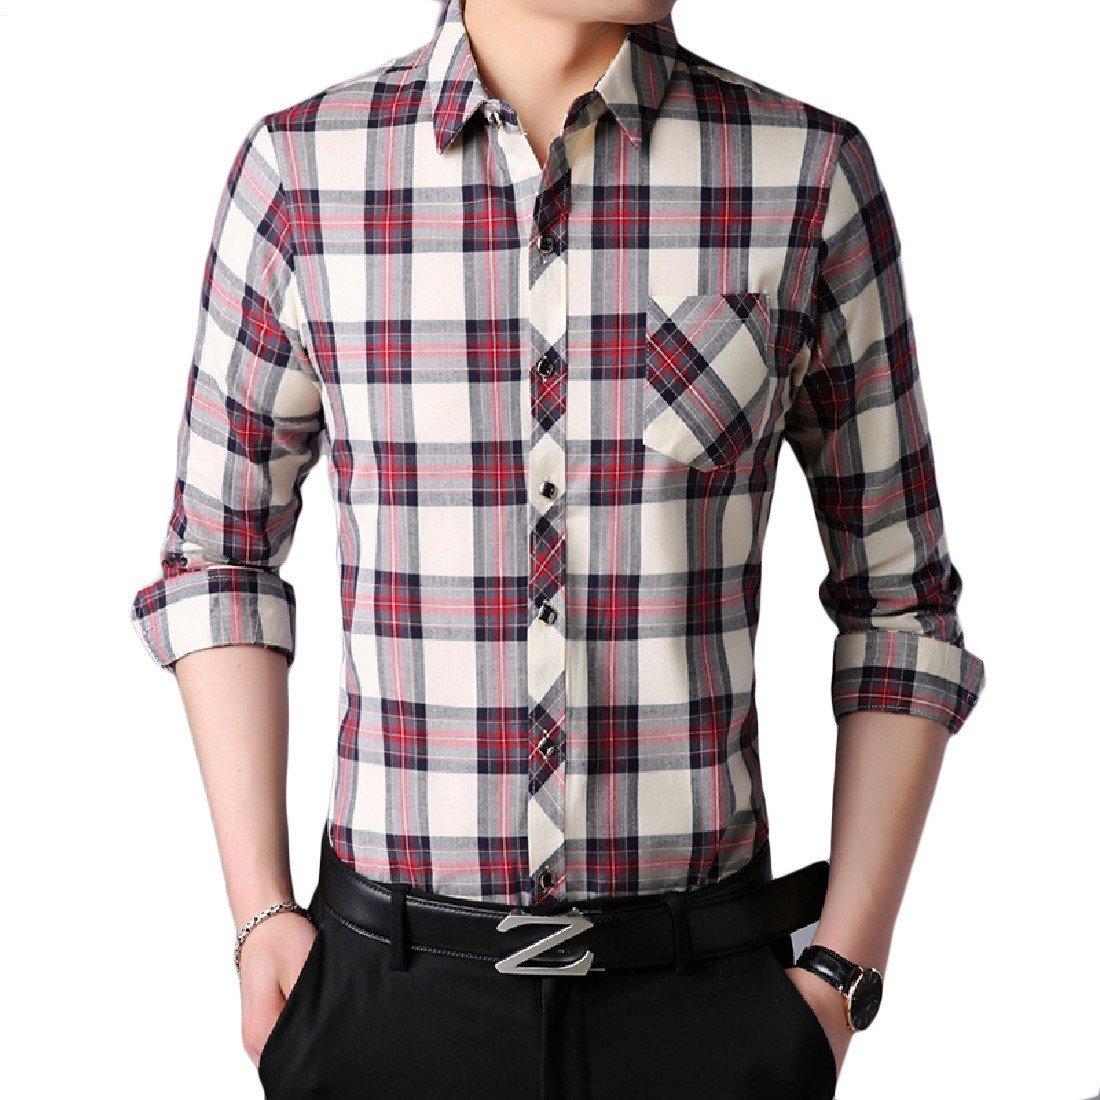 YUNY Mens Oversize Long Sleeve Cotton Plaid Skinny Dress Shirts Top Red L